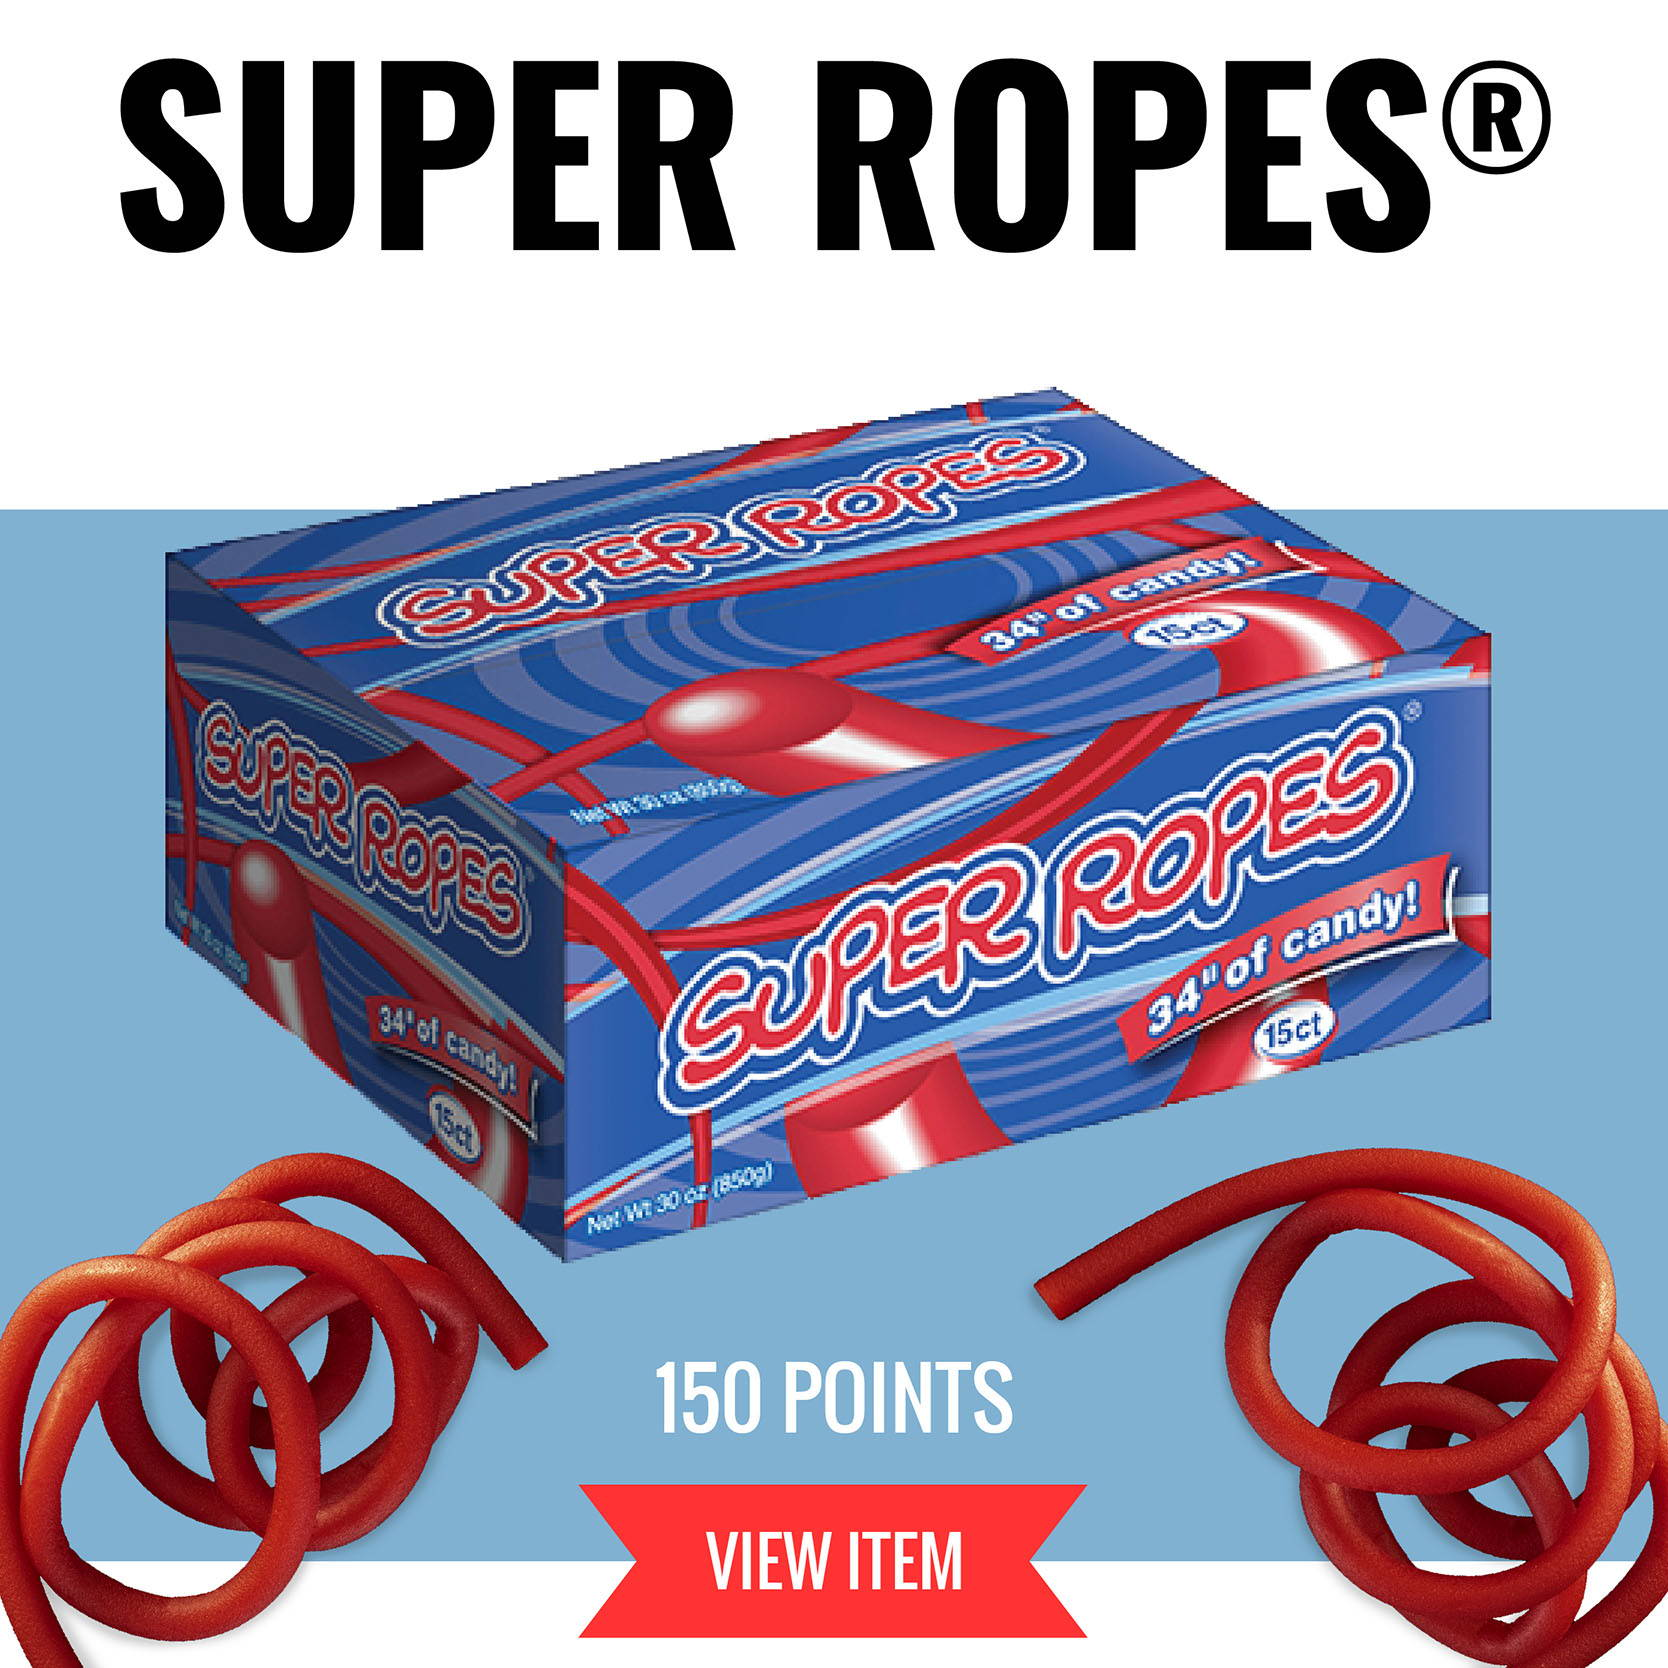 Super Ropes, 15 Pack - 150 Points - VIEW ITEM